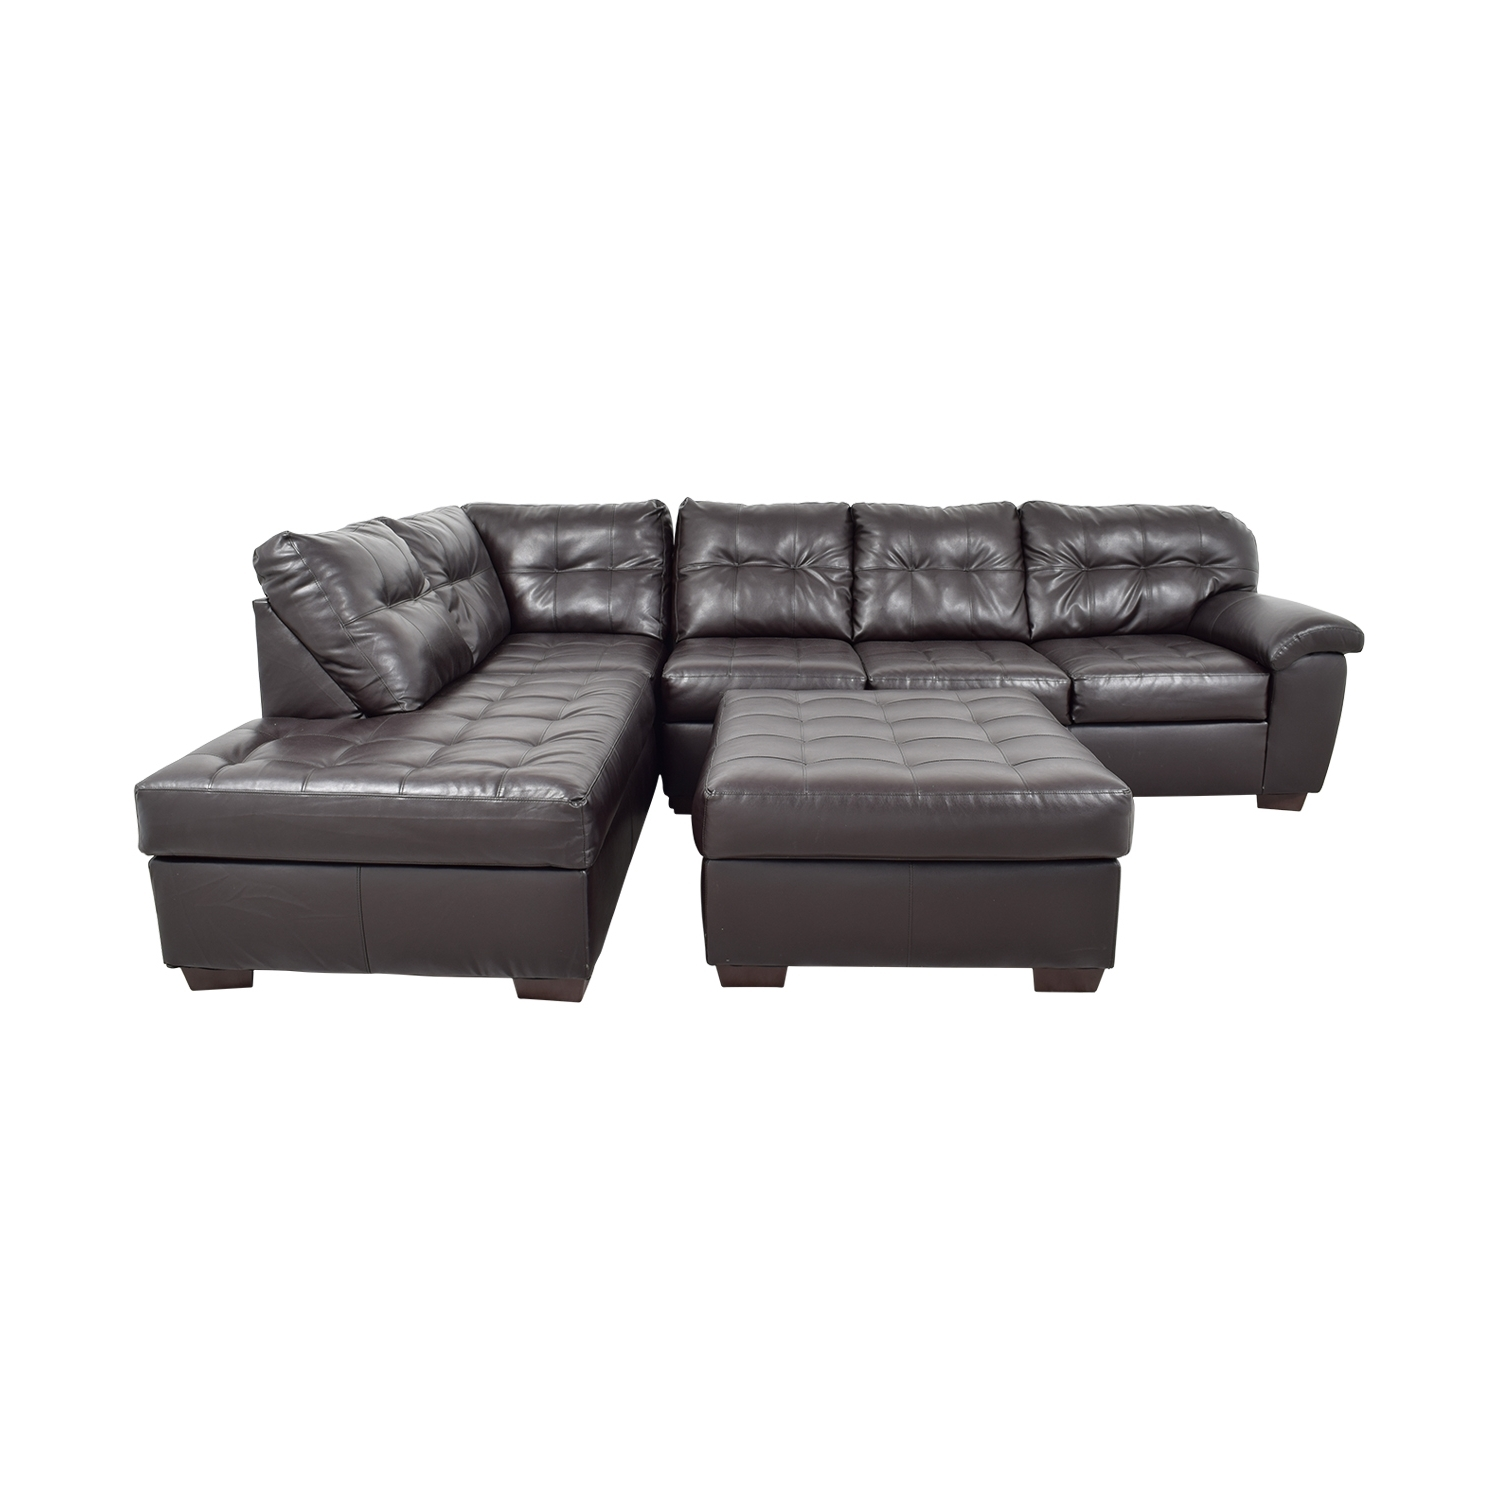 [%47% Off – Simmons Simmons Brown Leather Sectional With Ottoman / Sofas With Most Current Simmons Chaise Sofas|Simmons Chaise Sofas For Most Up To Date 47% Off – Simmons Simmons Brown Leather Sectional With Ottoman / Sofas|Famous Simmons Chaise Sofas Within 47% Off – Simmons Simmons Brown Leather Sectional With Ottoman / Sofas|Newest 47% Off – Simmons Simmons Brown Leather Sectional With Ottoman / Sofas In Simmons Chaise Sofas%] (View 2 of 20)